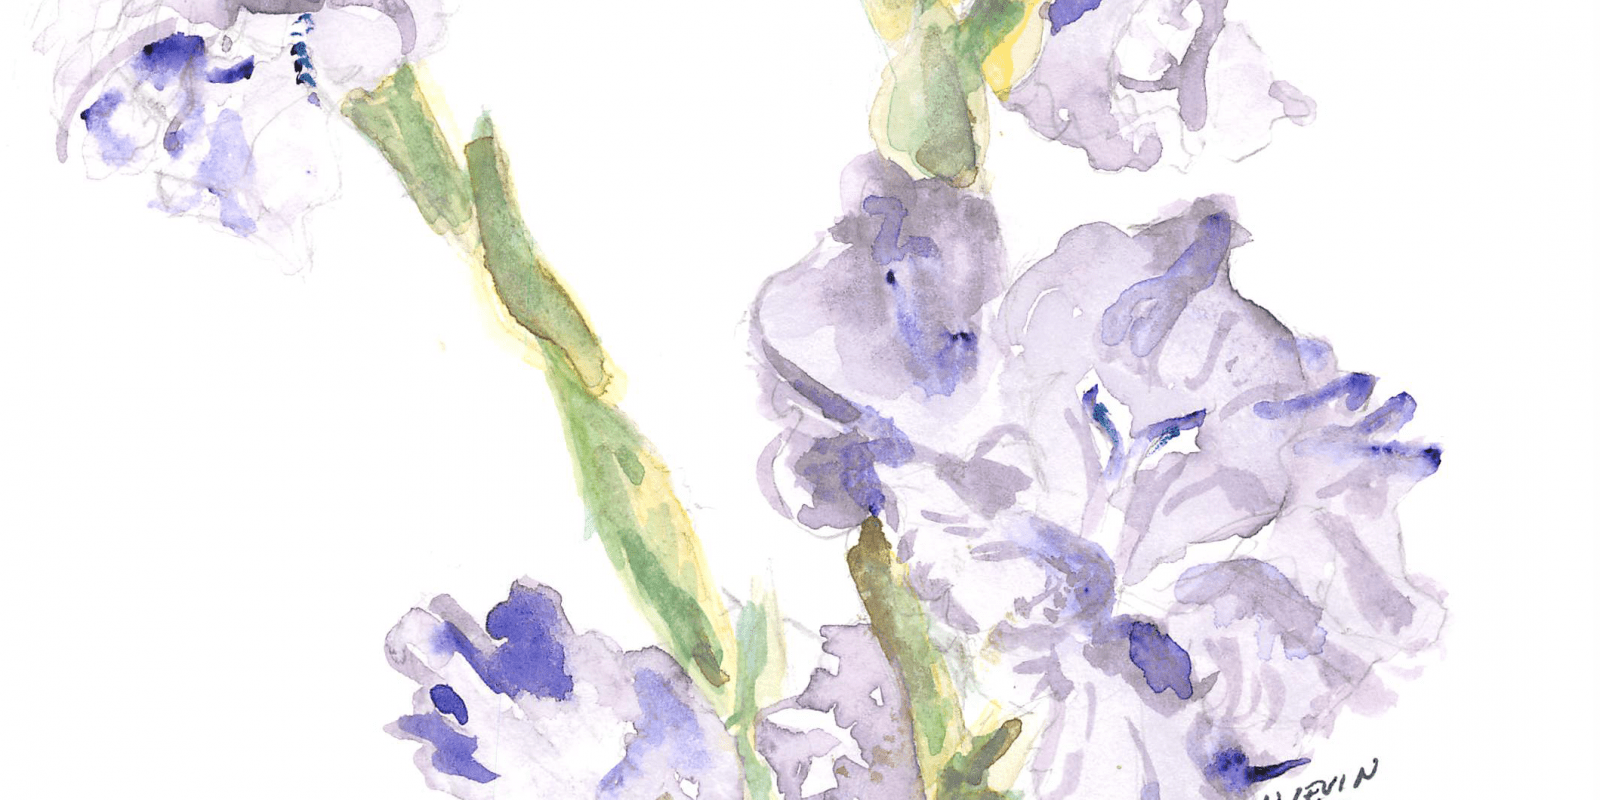 Playing with watercolors inspired me to come up with more creative small business marketing ideas